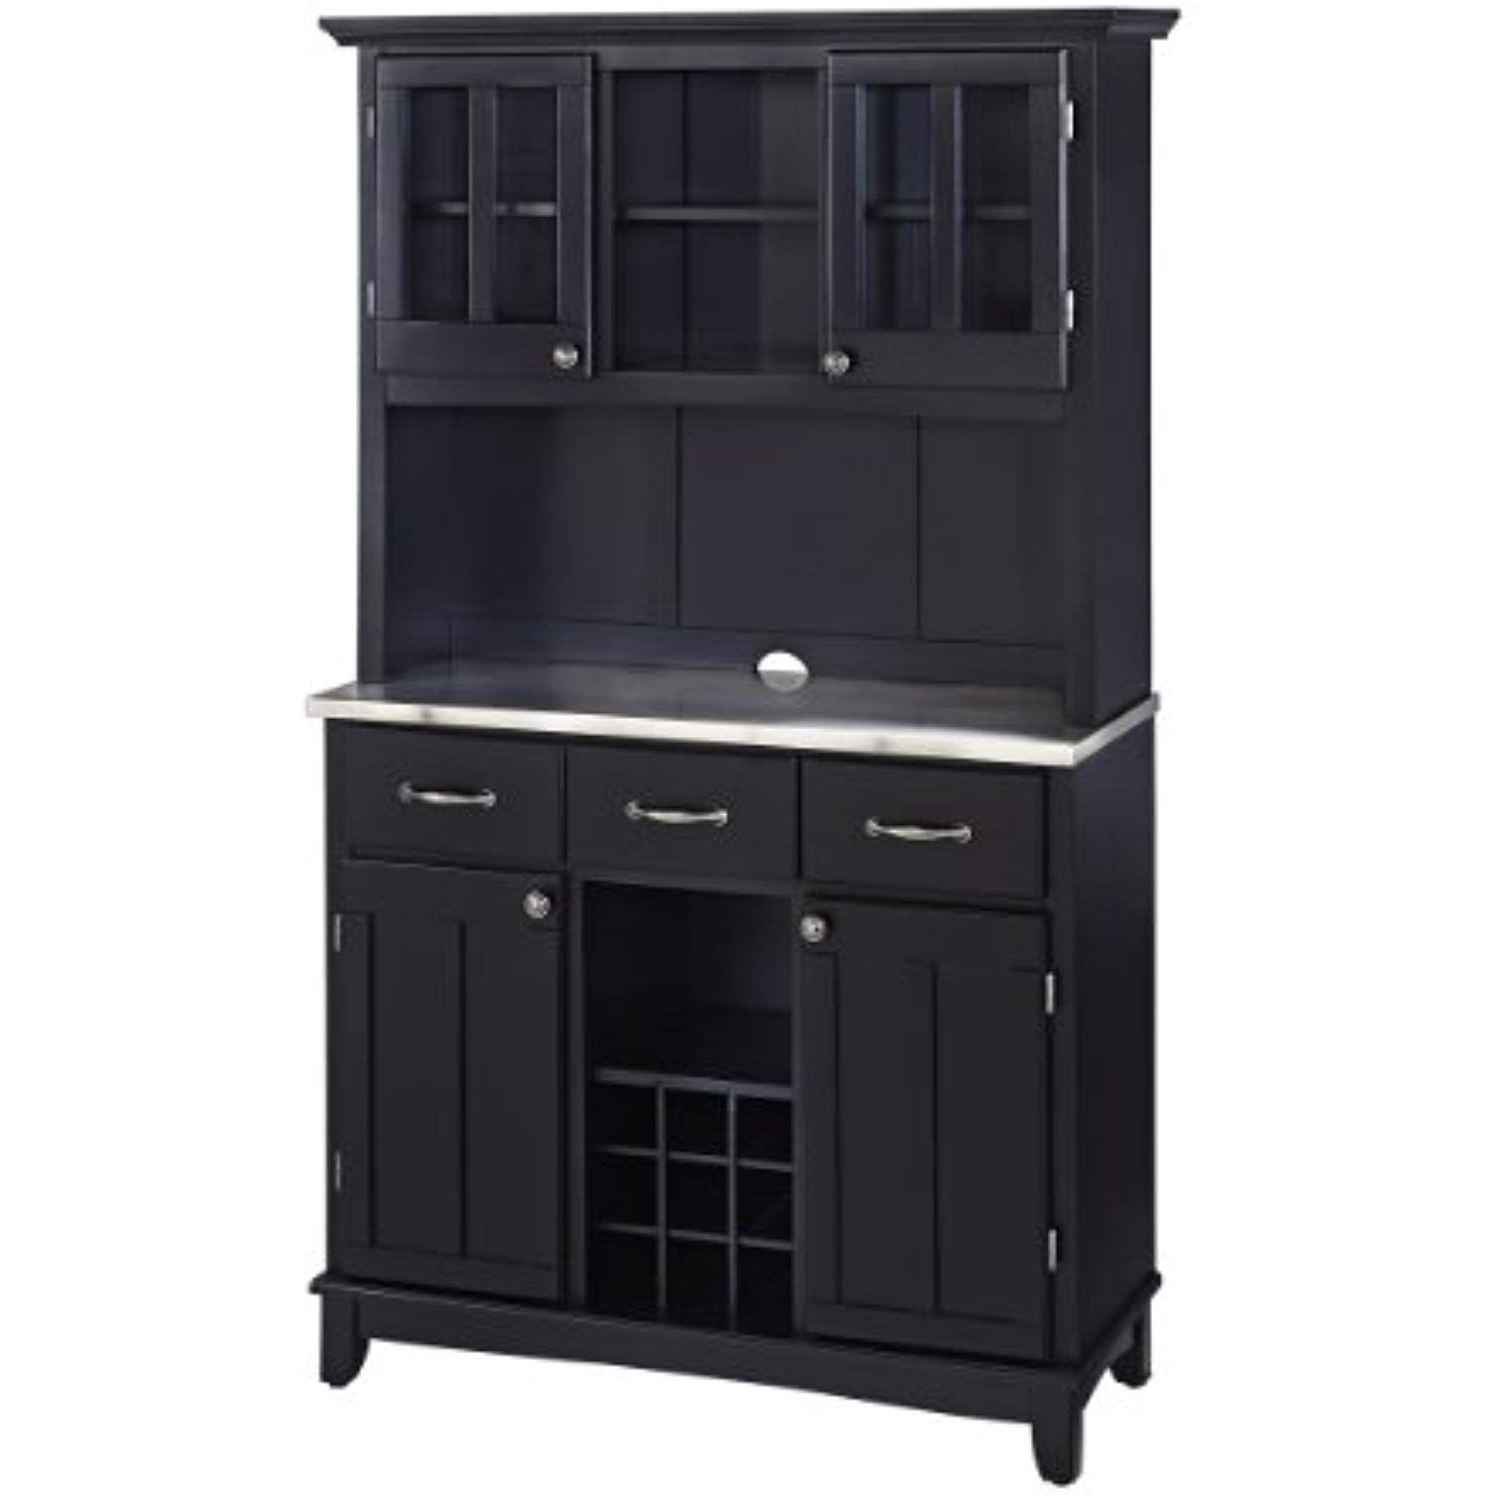 Home Styles 5100 0043 42 Buffet Of Buffets Stainless Steel Within Black Hutch Buffets With Stainless Top (View 2 of 20)